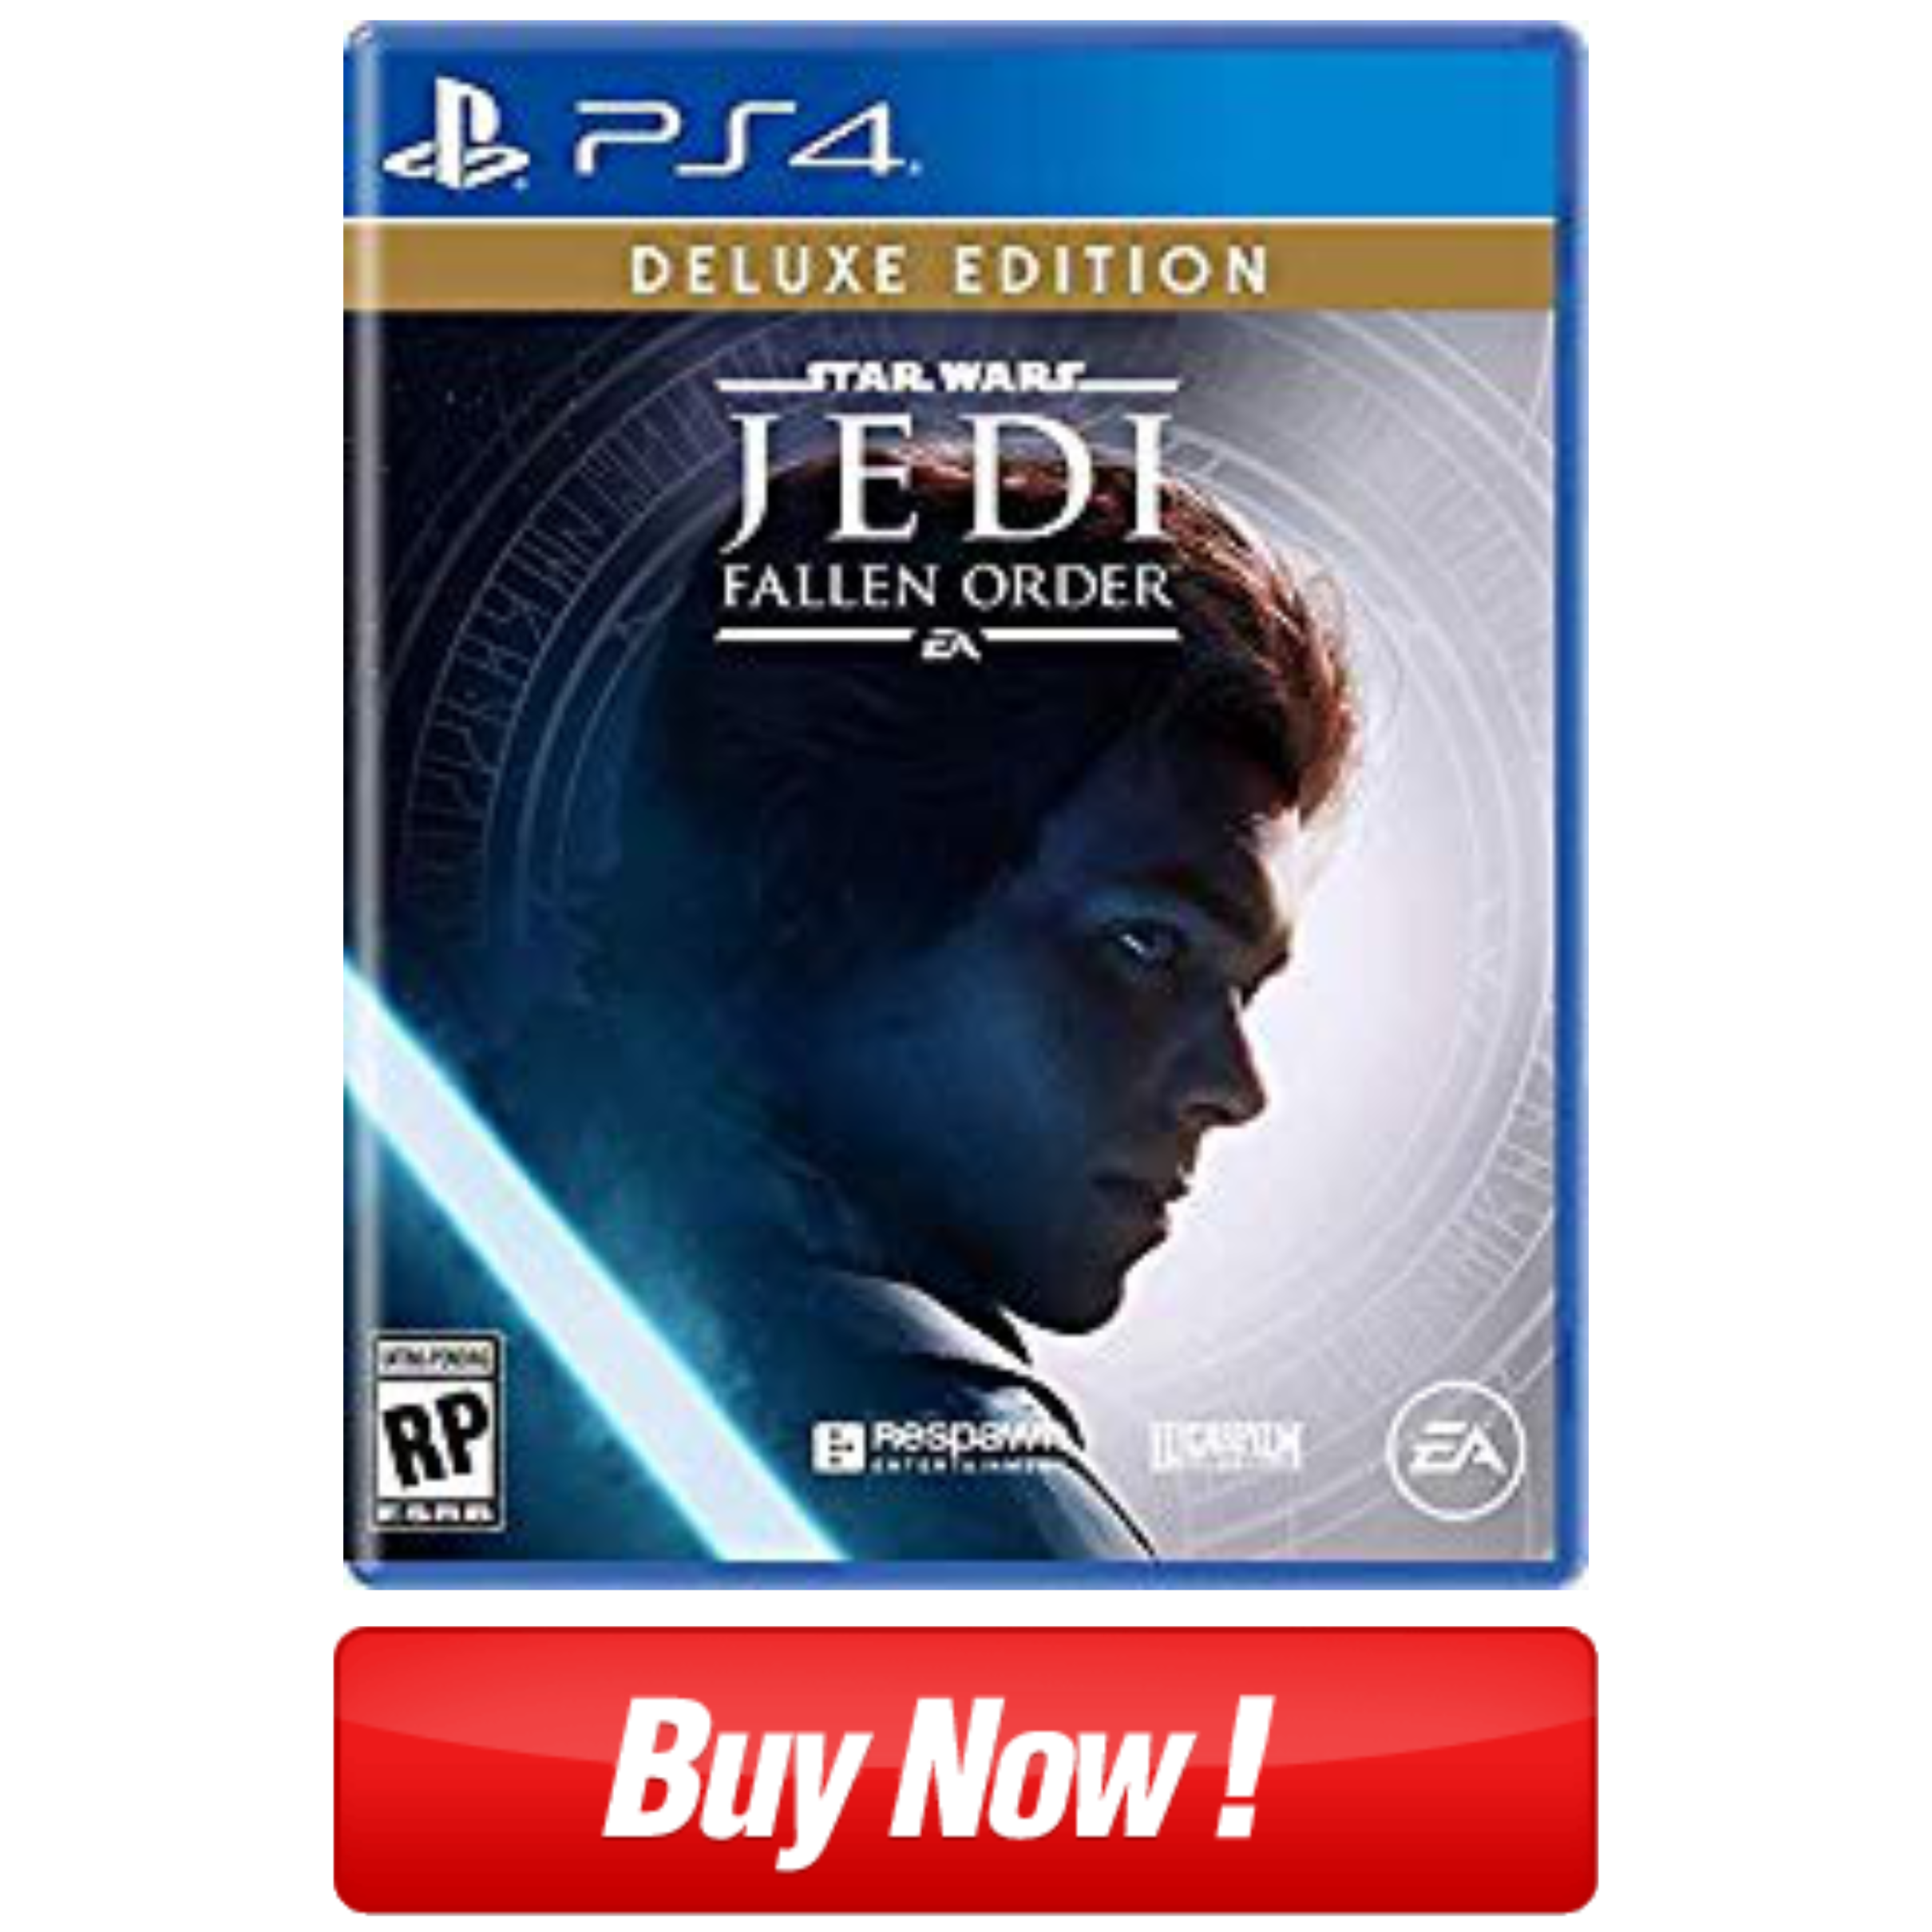 Buy Star Wars Jedi Fallen Order Deluxe Edition by Electronic Arts for PlayStation 4 at Video Game Depot Find release dates, customer reviews, previews, and more